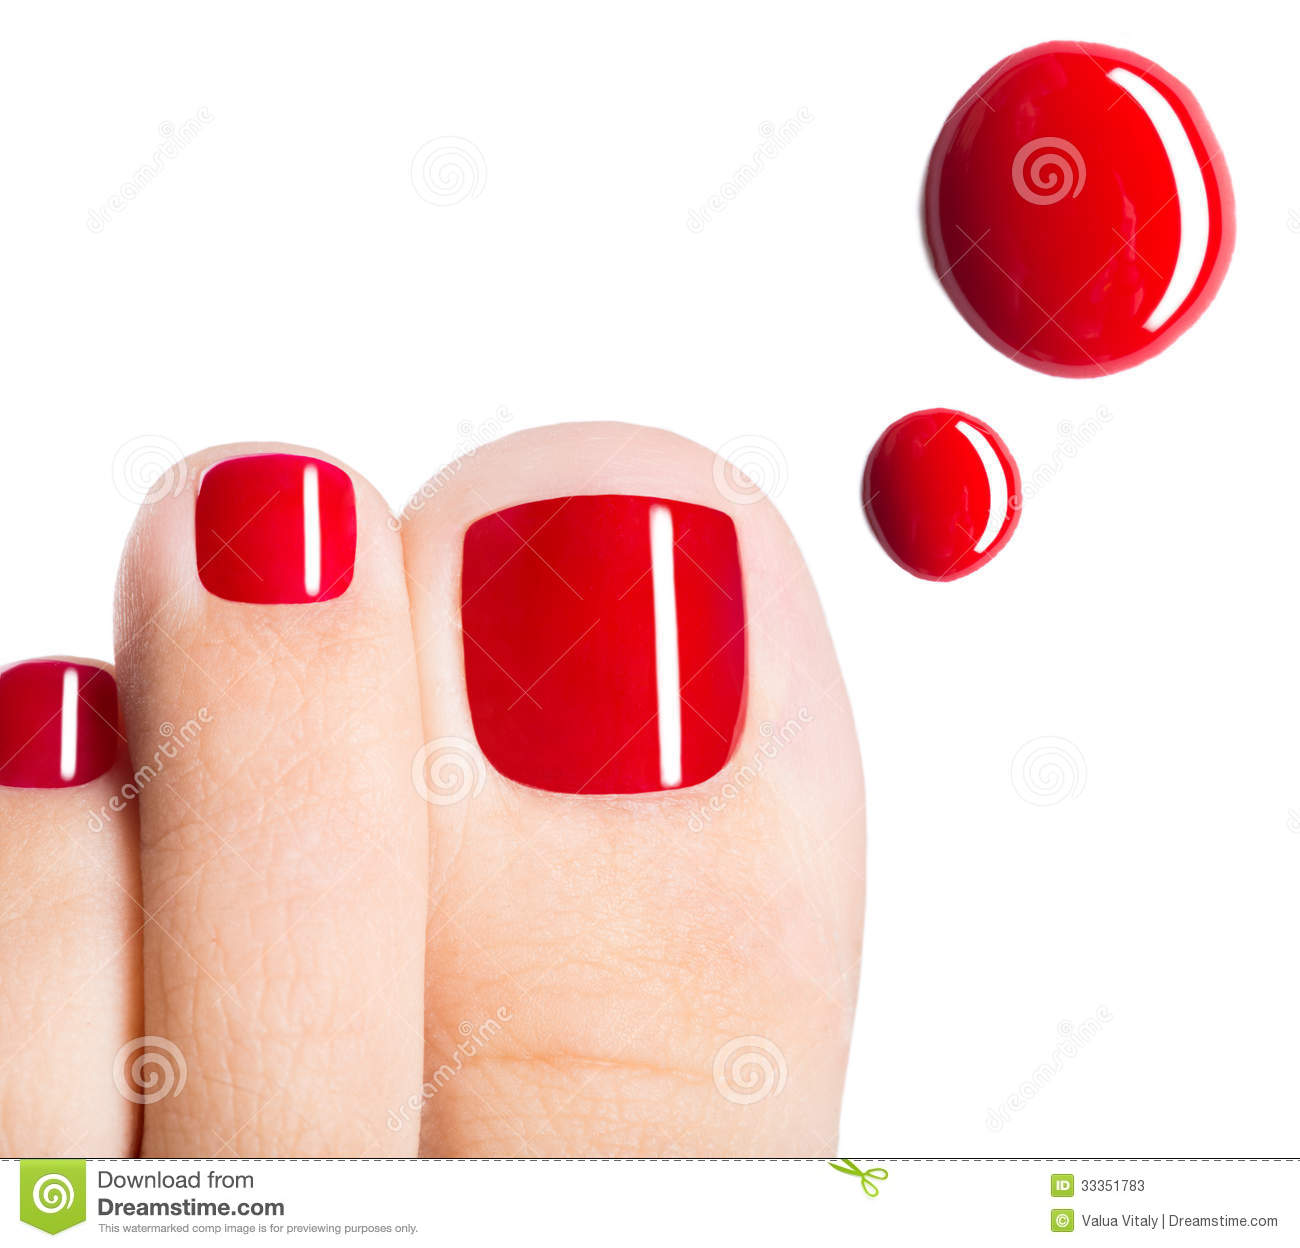 Red Nail Polish Toes: Beautiful Female Toes With Red Pedicure And Drops Of Nail